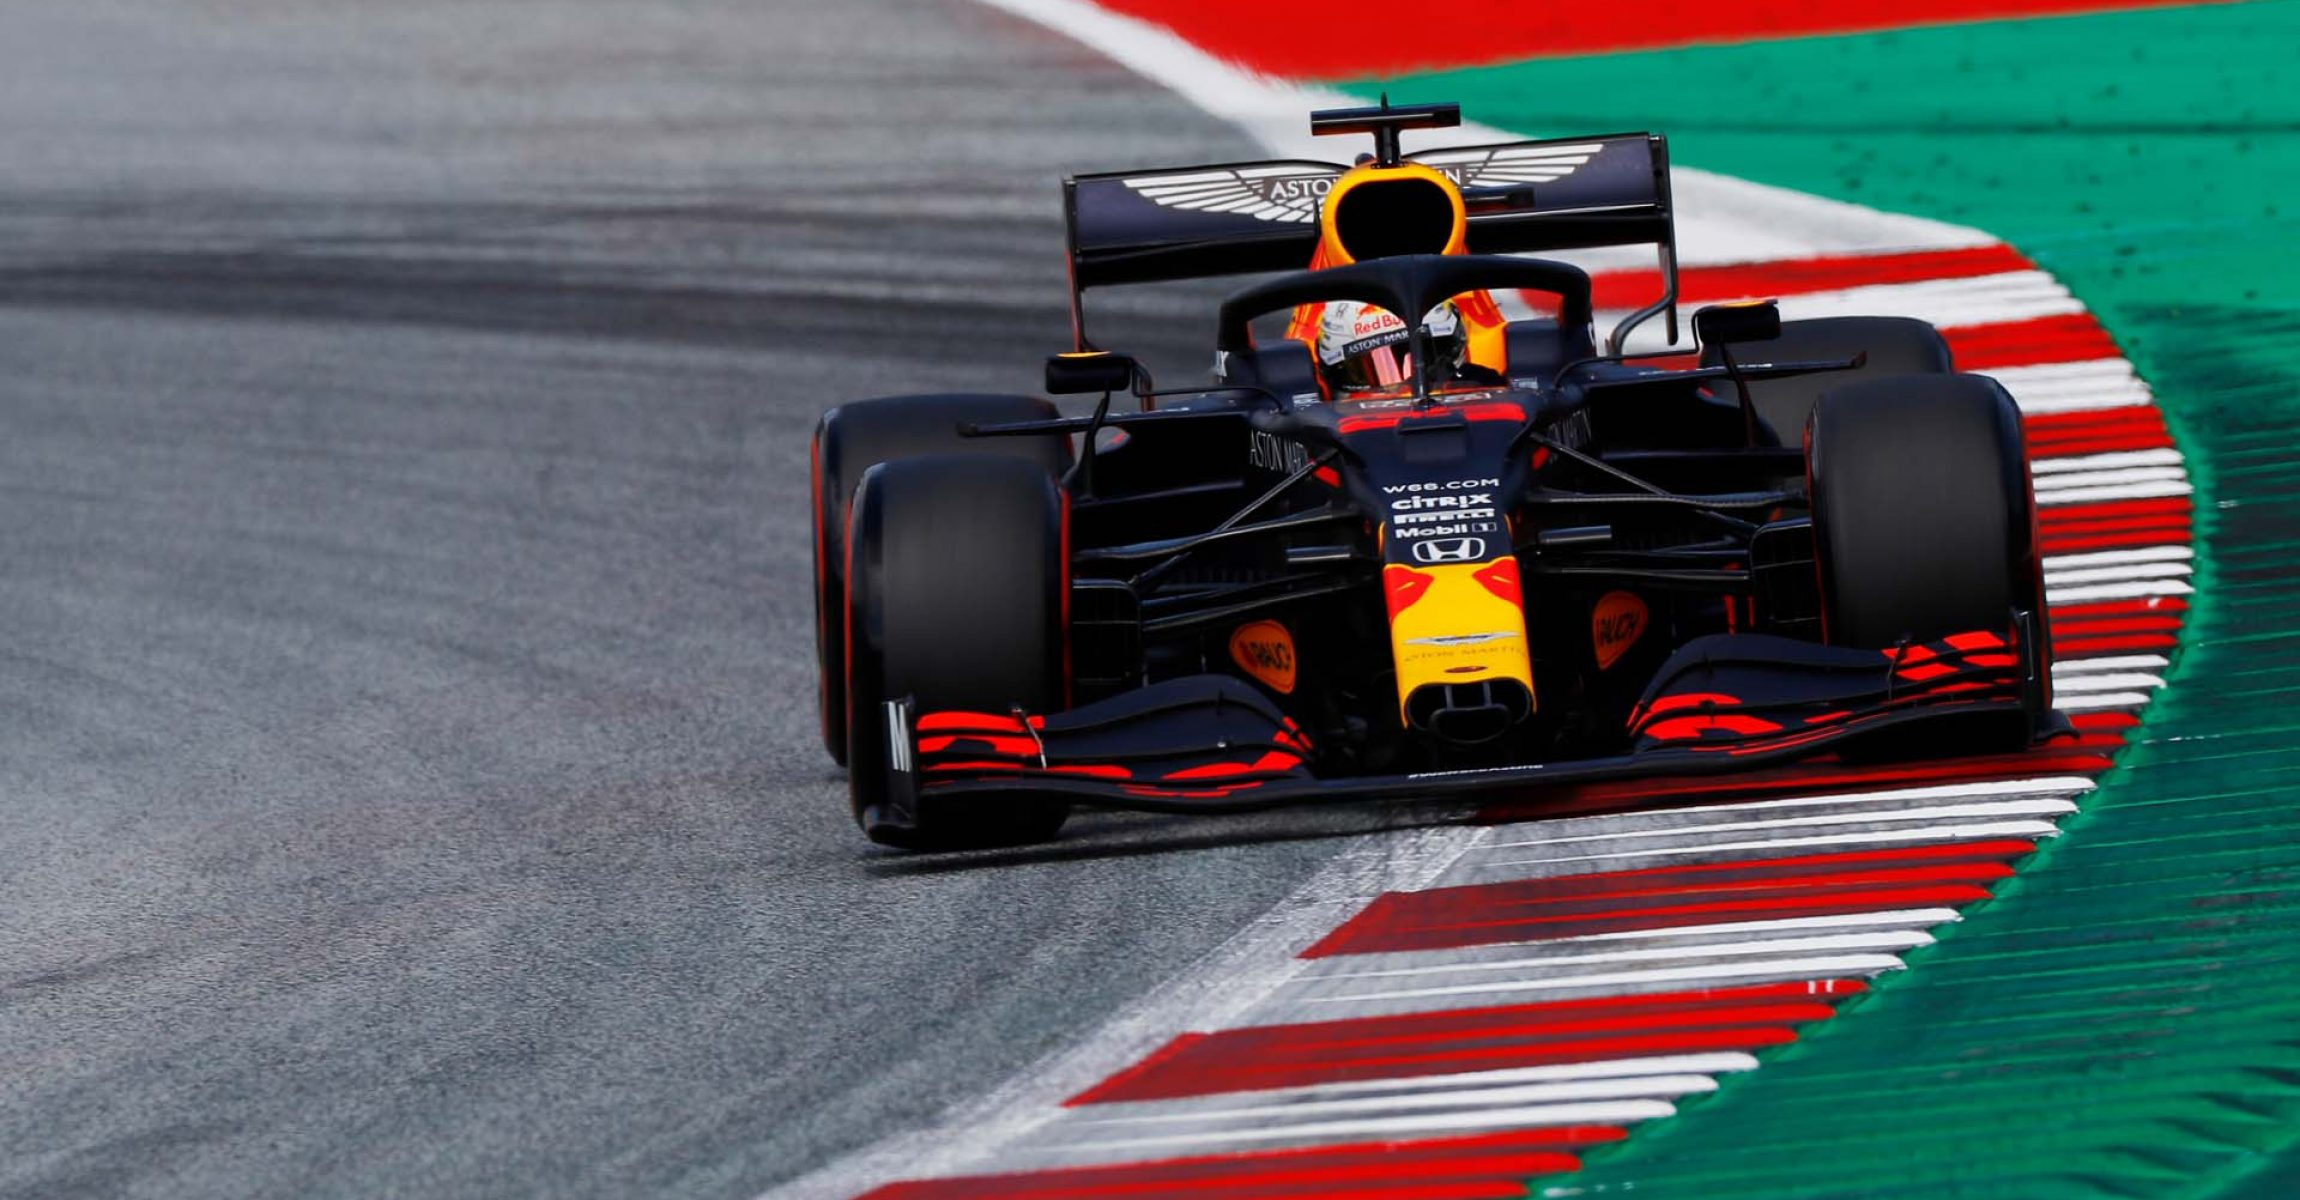 SPIELBERG, AUSTRIA - JULY 04: Max Verstappen of the Netherlands driving the (33) Aston Martin Red Bull Racing RB16 on track during qualifying for the Formula One Grand Prix of Austria at Red Bull Ring on July 04, 2020 in Spielberg, Austria. (Photo by Leonhard Foeger/Pool via Getty Images) // Getty Images / Red Bull Content Pool // AP-24HC812SH2111 // Usage for editorial use only //